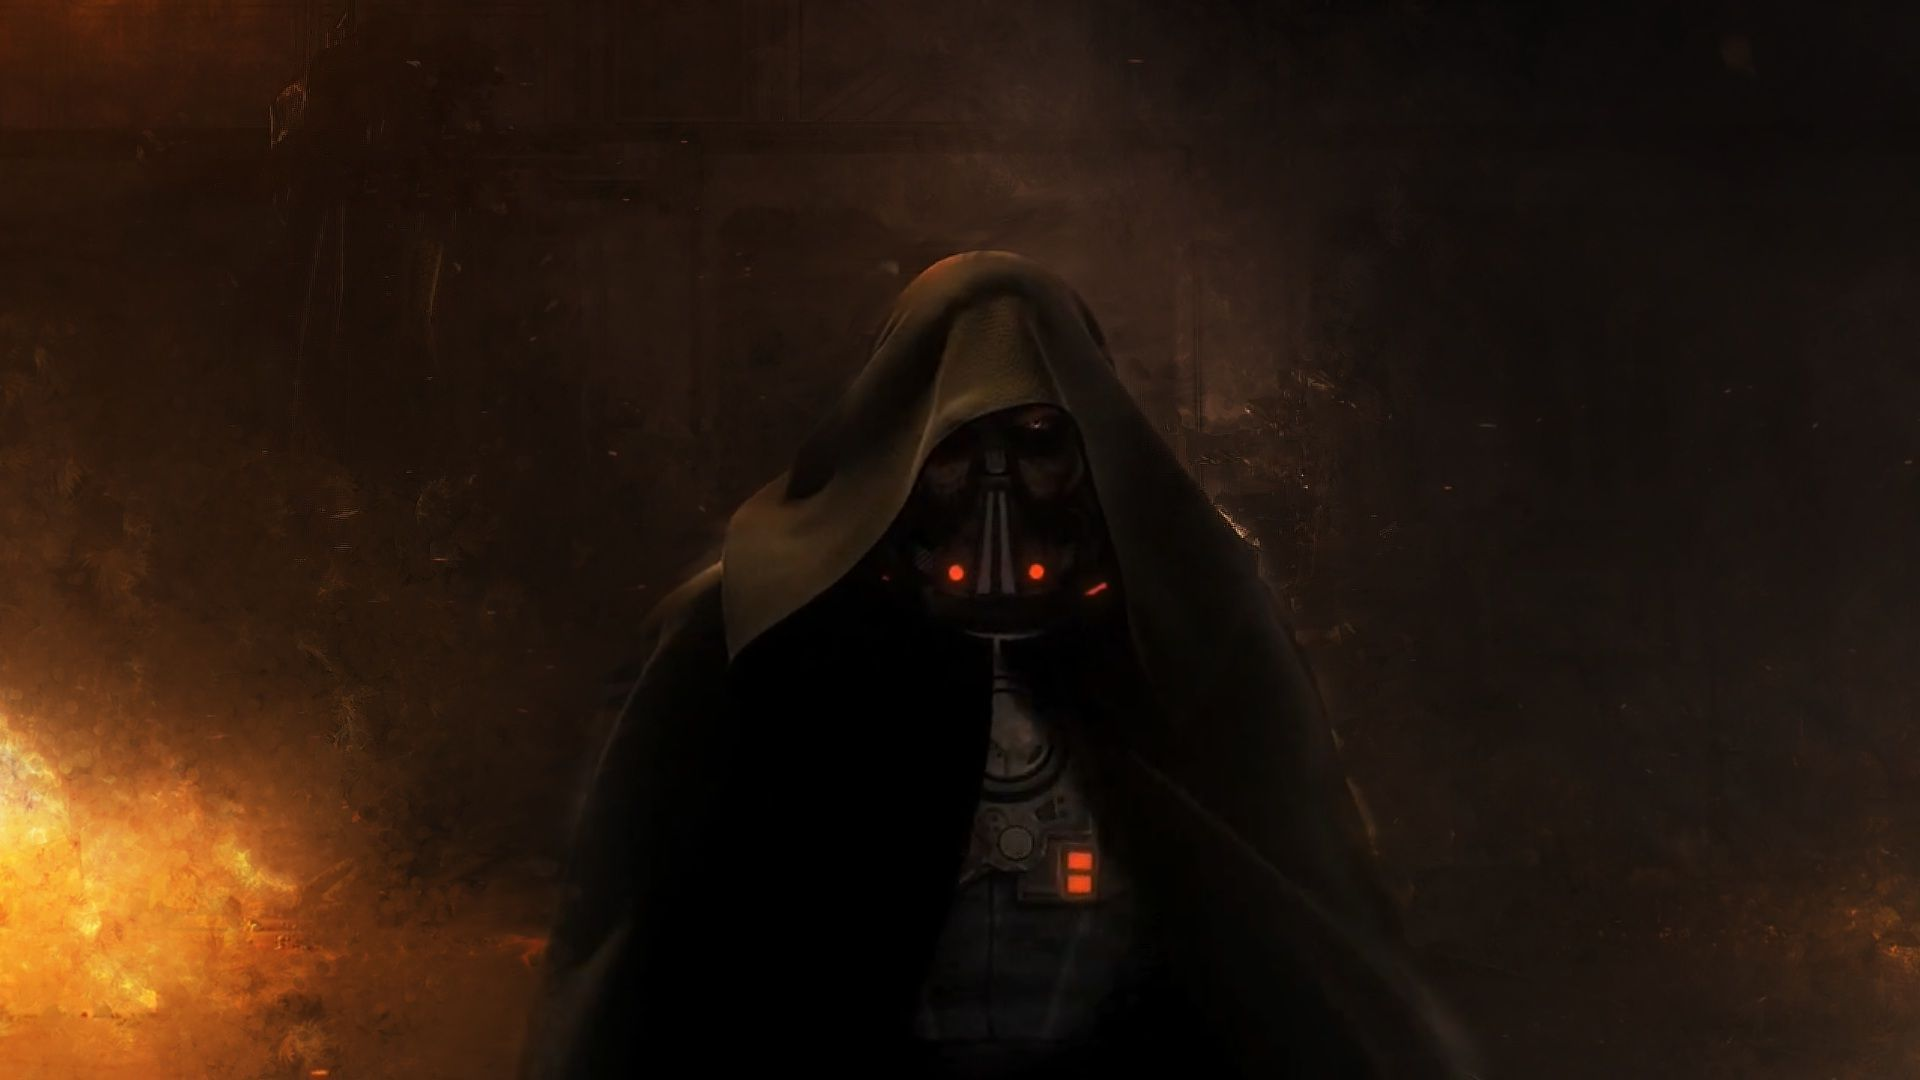 Star Wars Sith Wallpapers 1920x1080